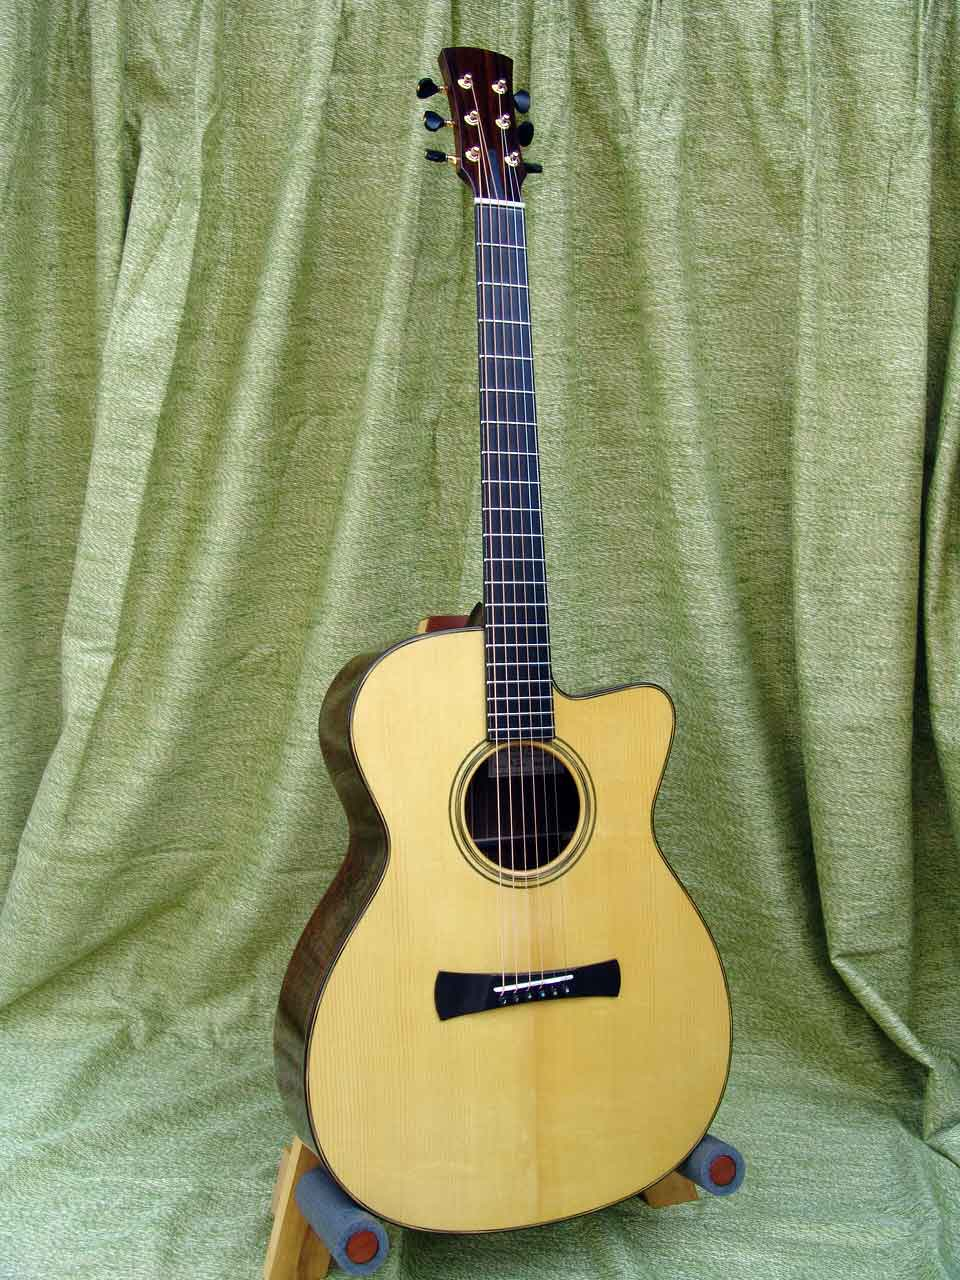 Laurent Brondel guitars model a1